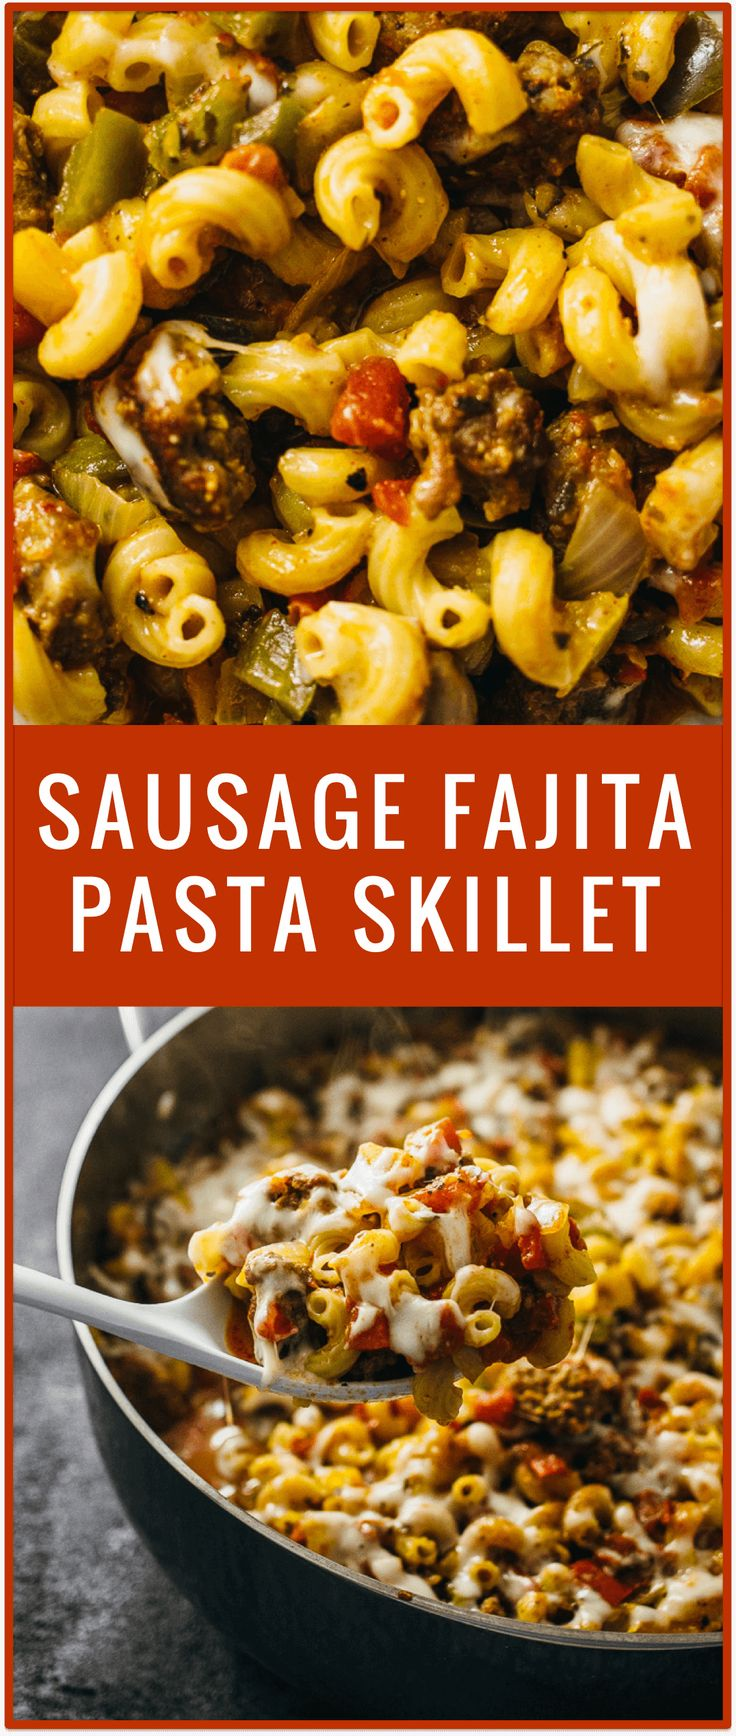 This tasty sausage fajita pasta skillet recipe includes spicy Italian pork sausage cooked with mozzarella cheese and my homemade Mexican fajita seasoning mix.